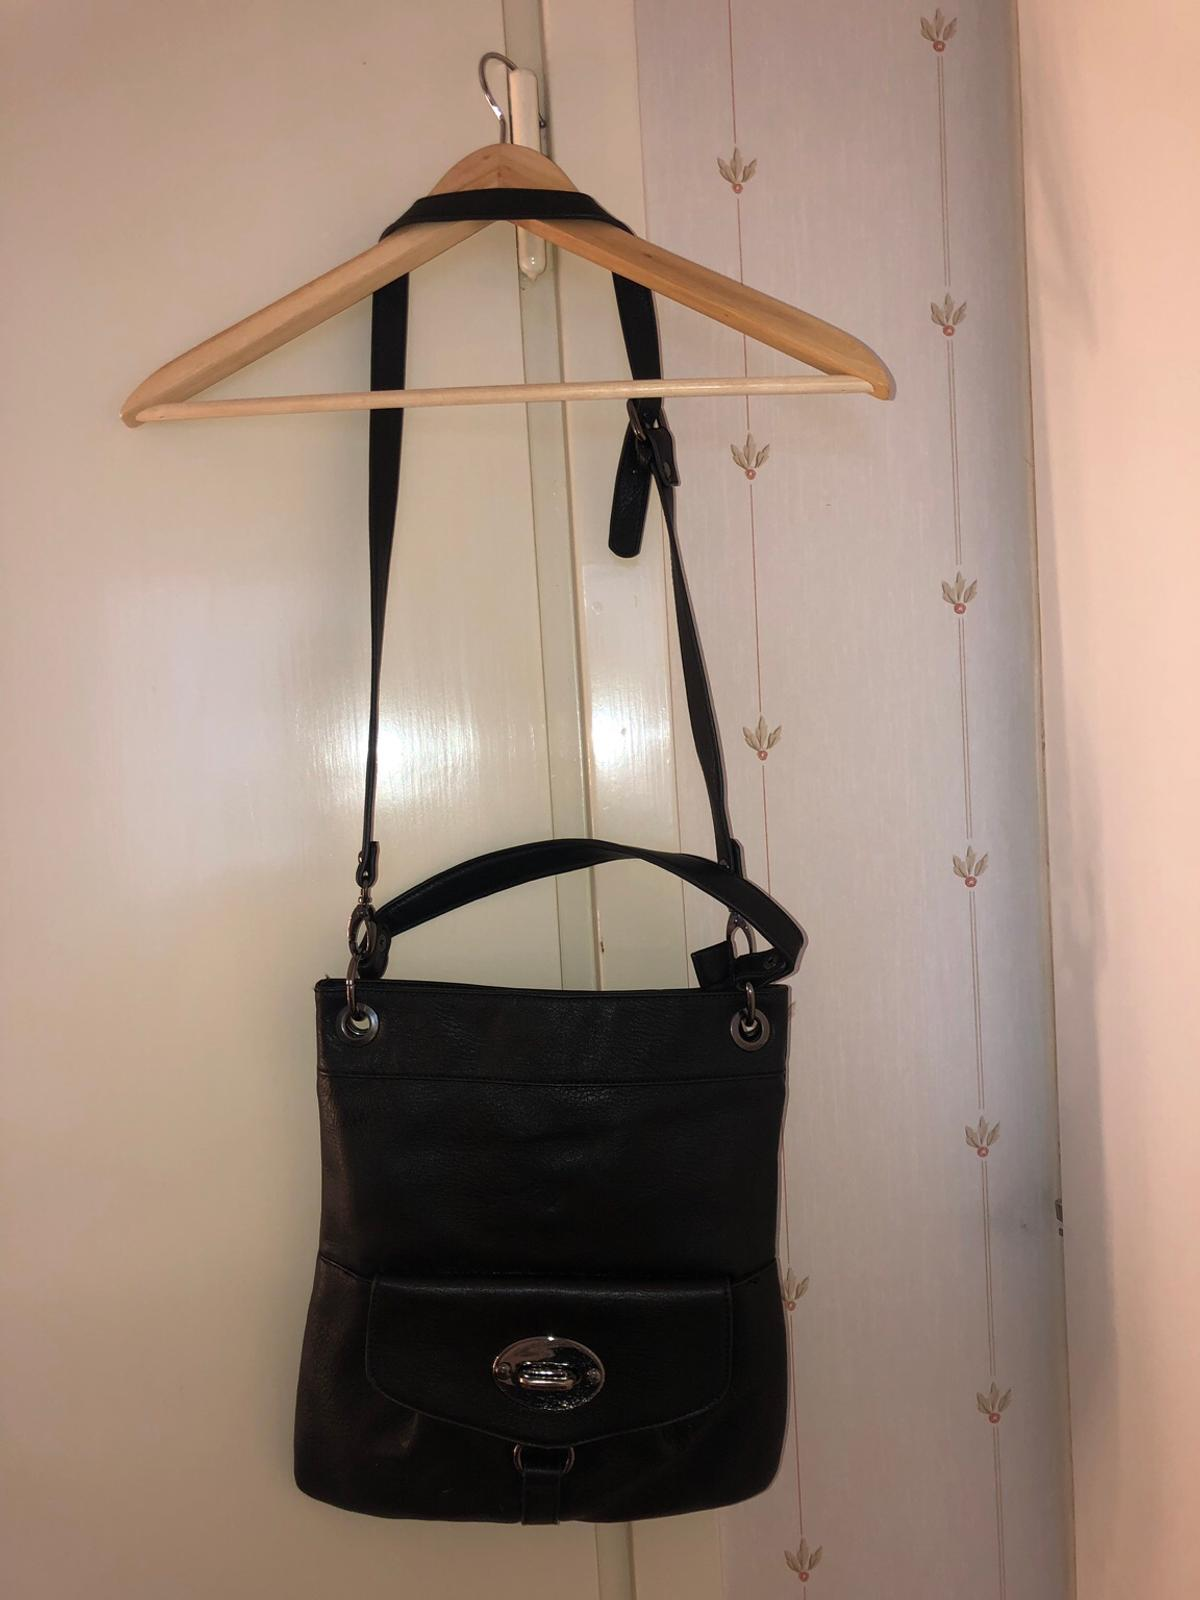 bra kvalitet nyaste kollektion billig Fanco rino bag in 392 43 Kalmar for SEK 700.00 for sale | Shpock